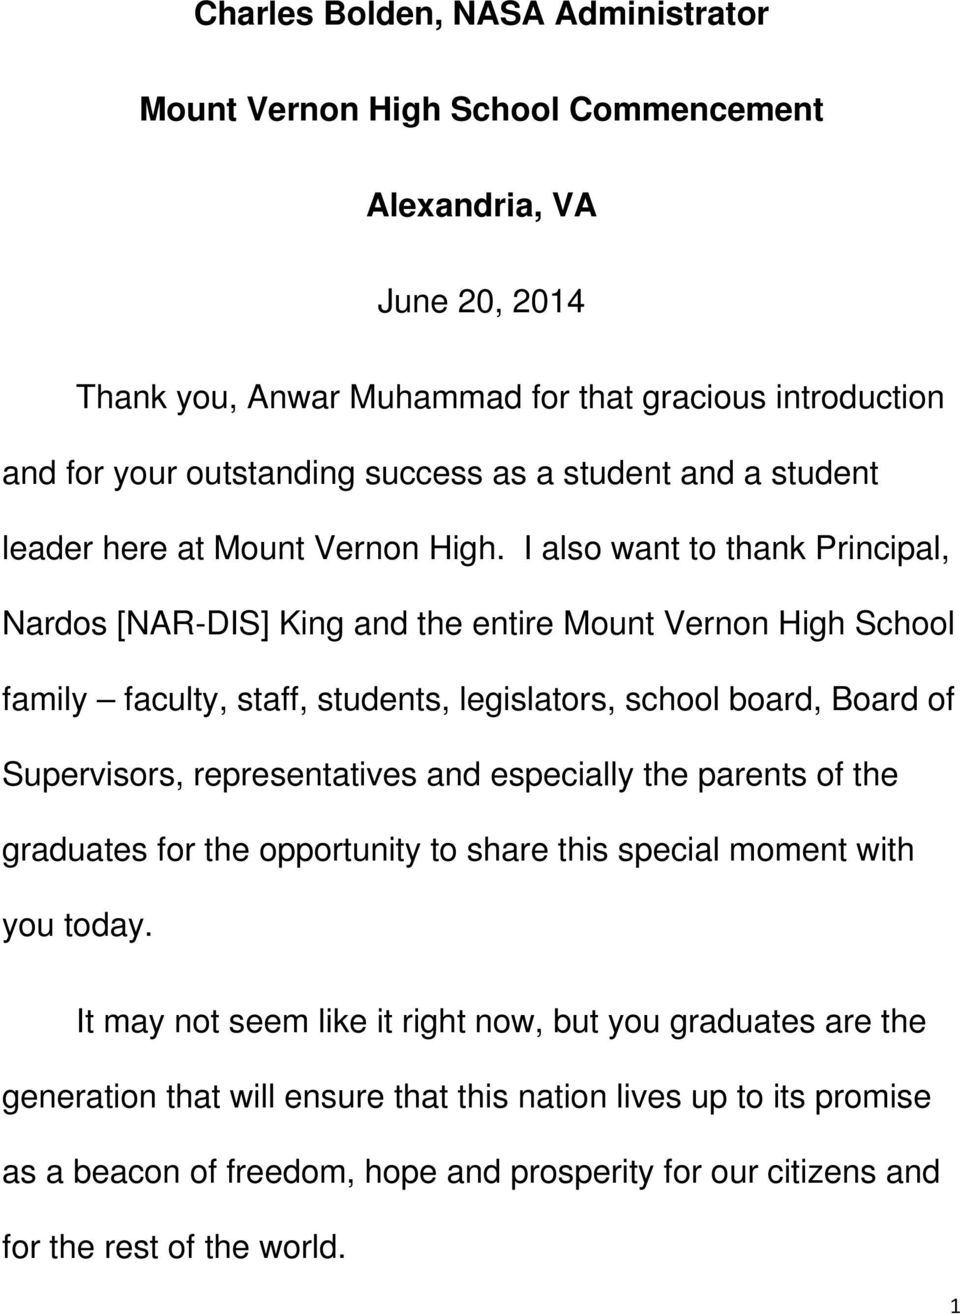 I also want to thank Principal, Nardos [NAR-DIS] King and the entire Mount Vernon High School family faculty, staff, students, legislators, school board, Board of Supervisors, representatives